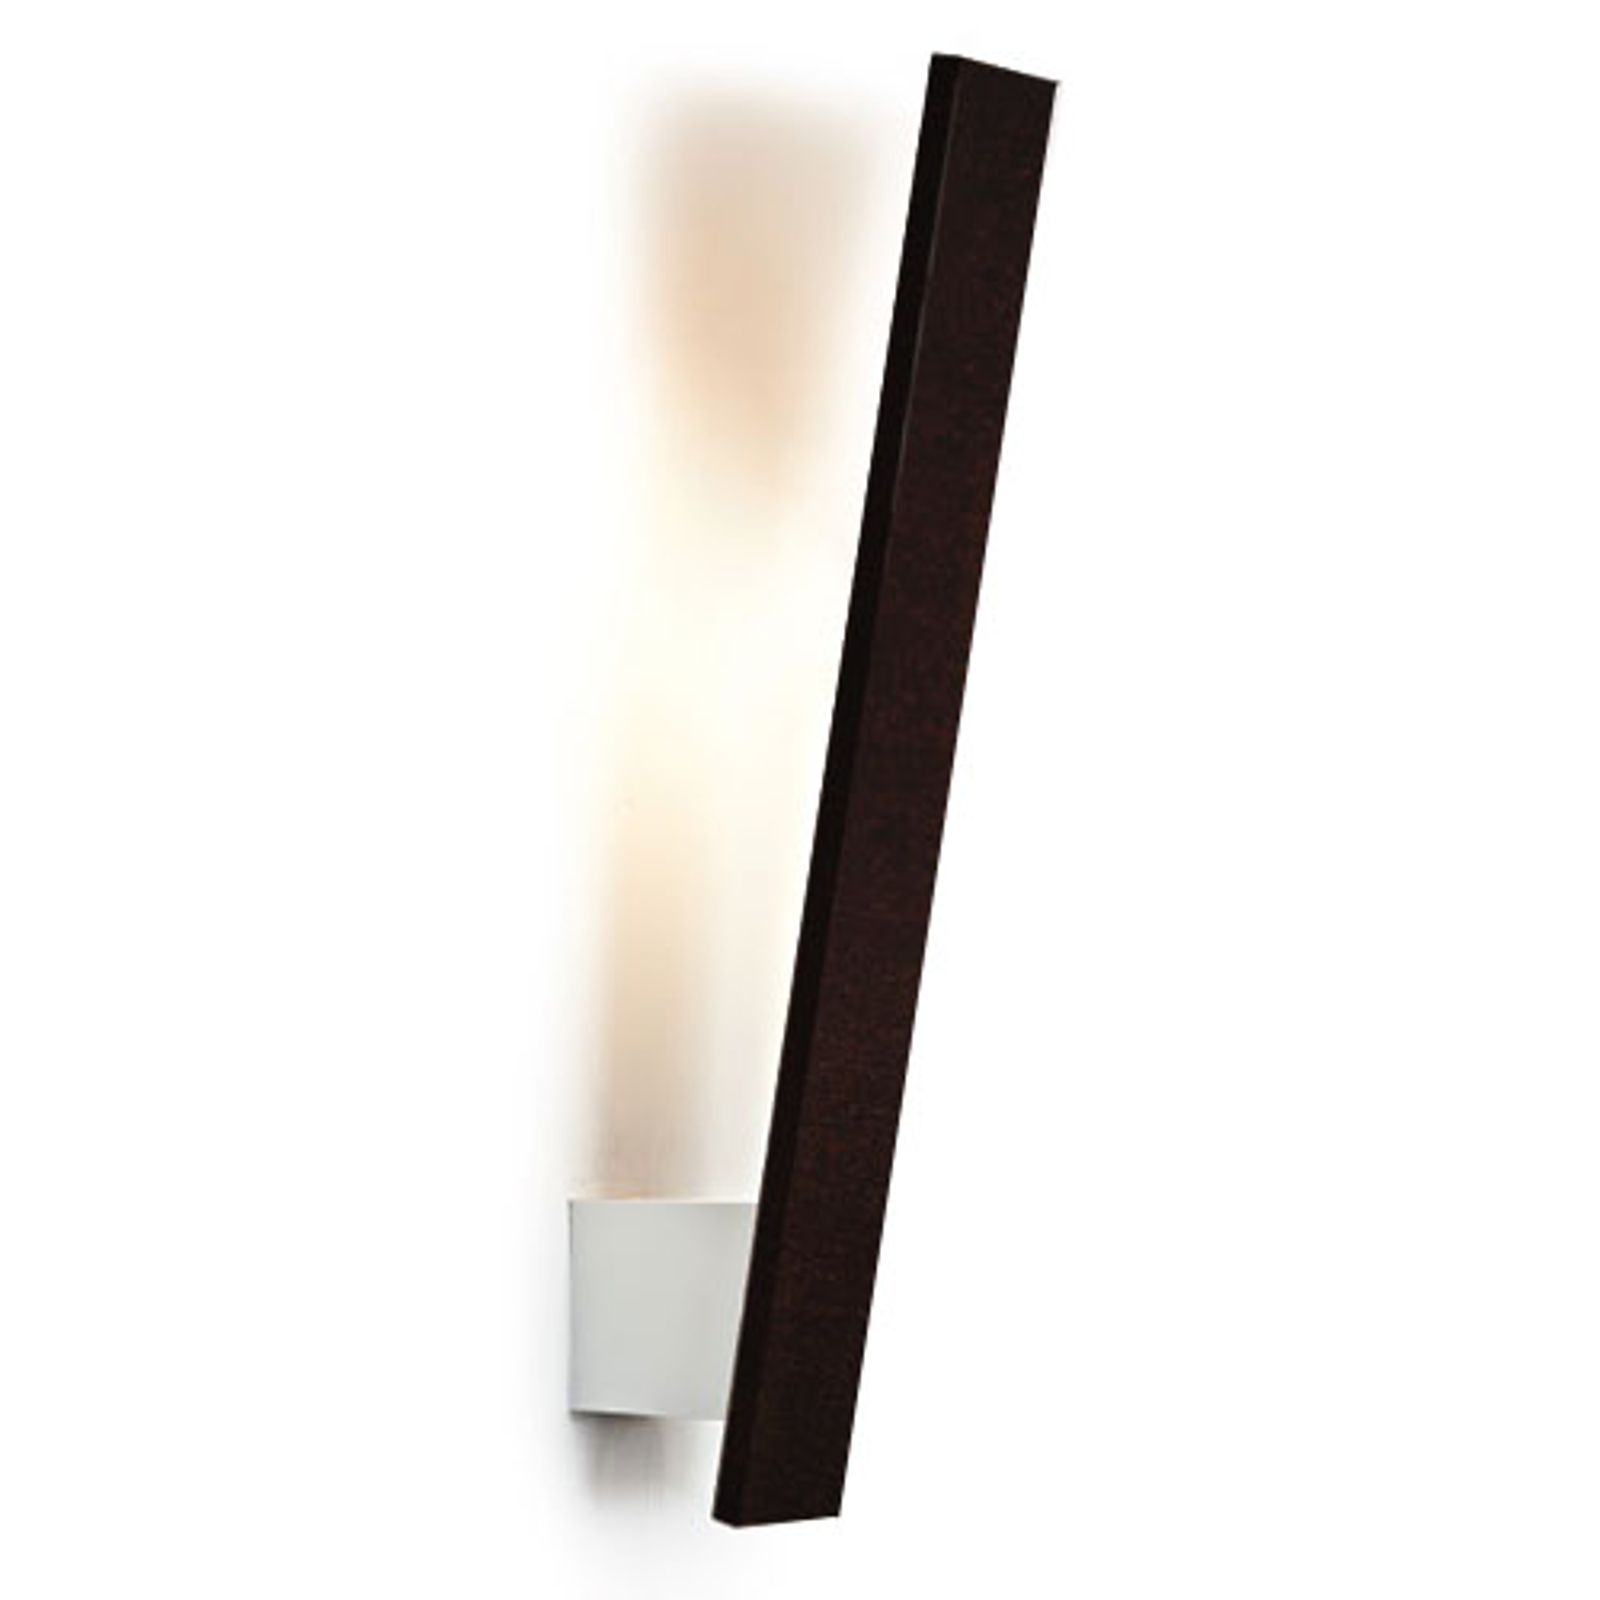 LED wall light Flik made out Corten steel_3039178_1